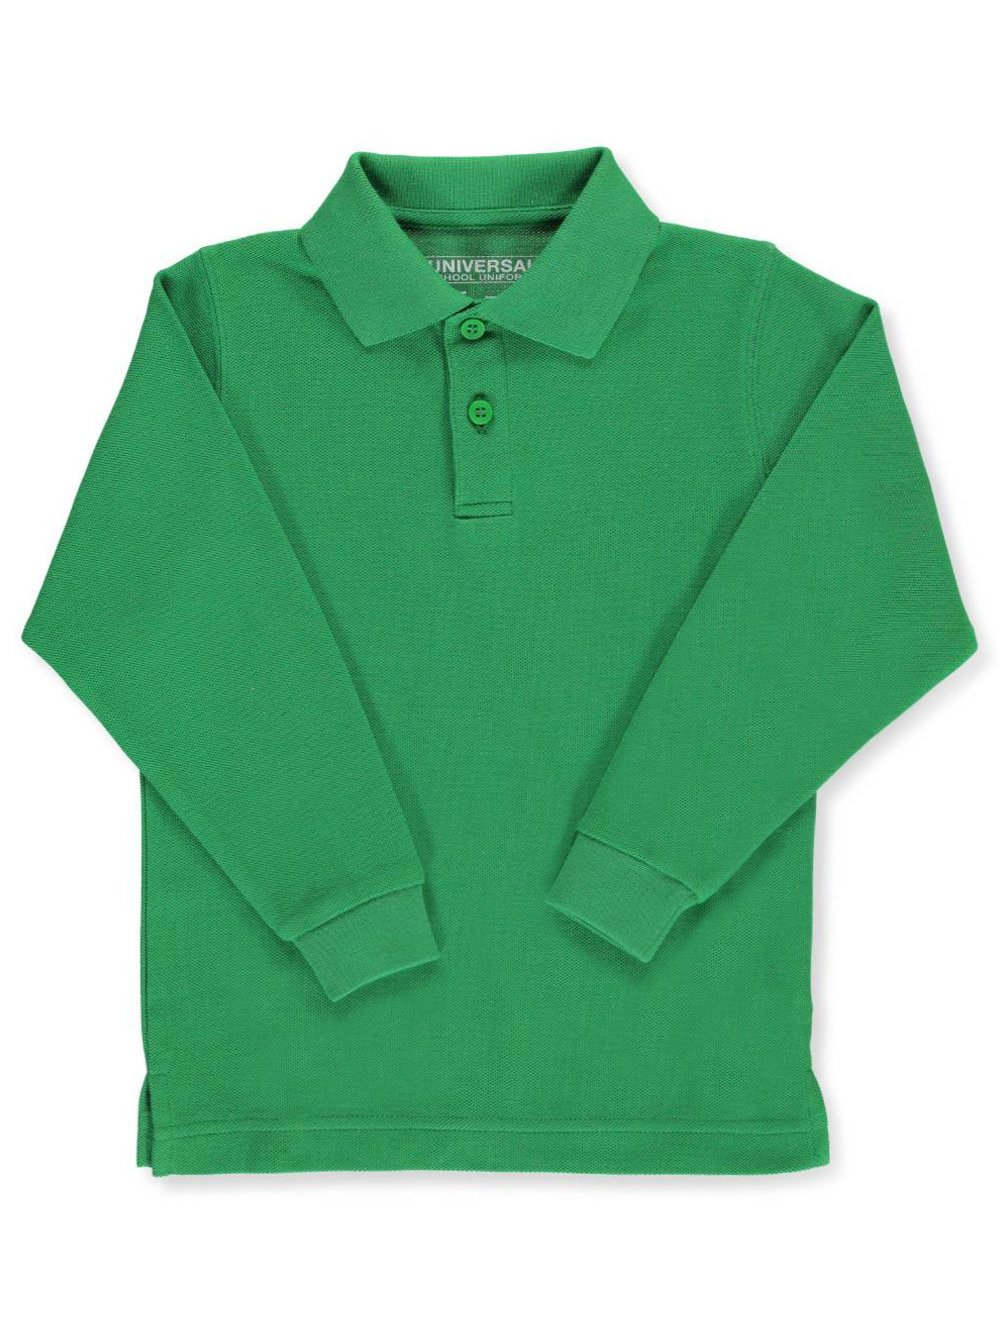 Cookie's Kids Universal Children's Long Sleeve Pique Polo Shirt